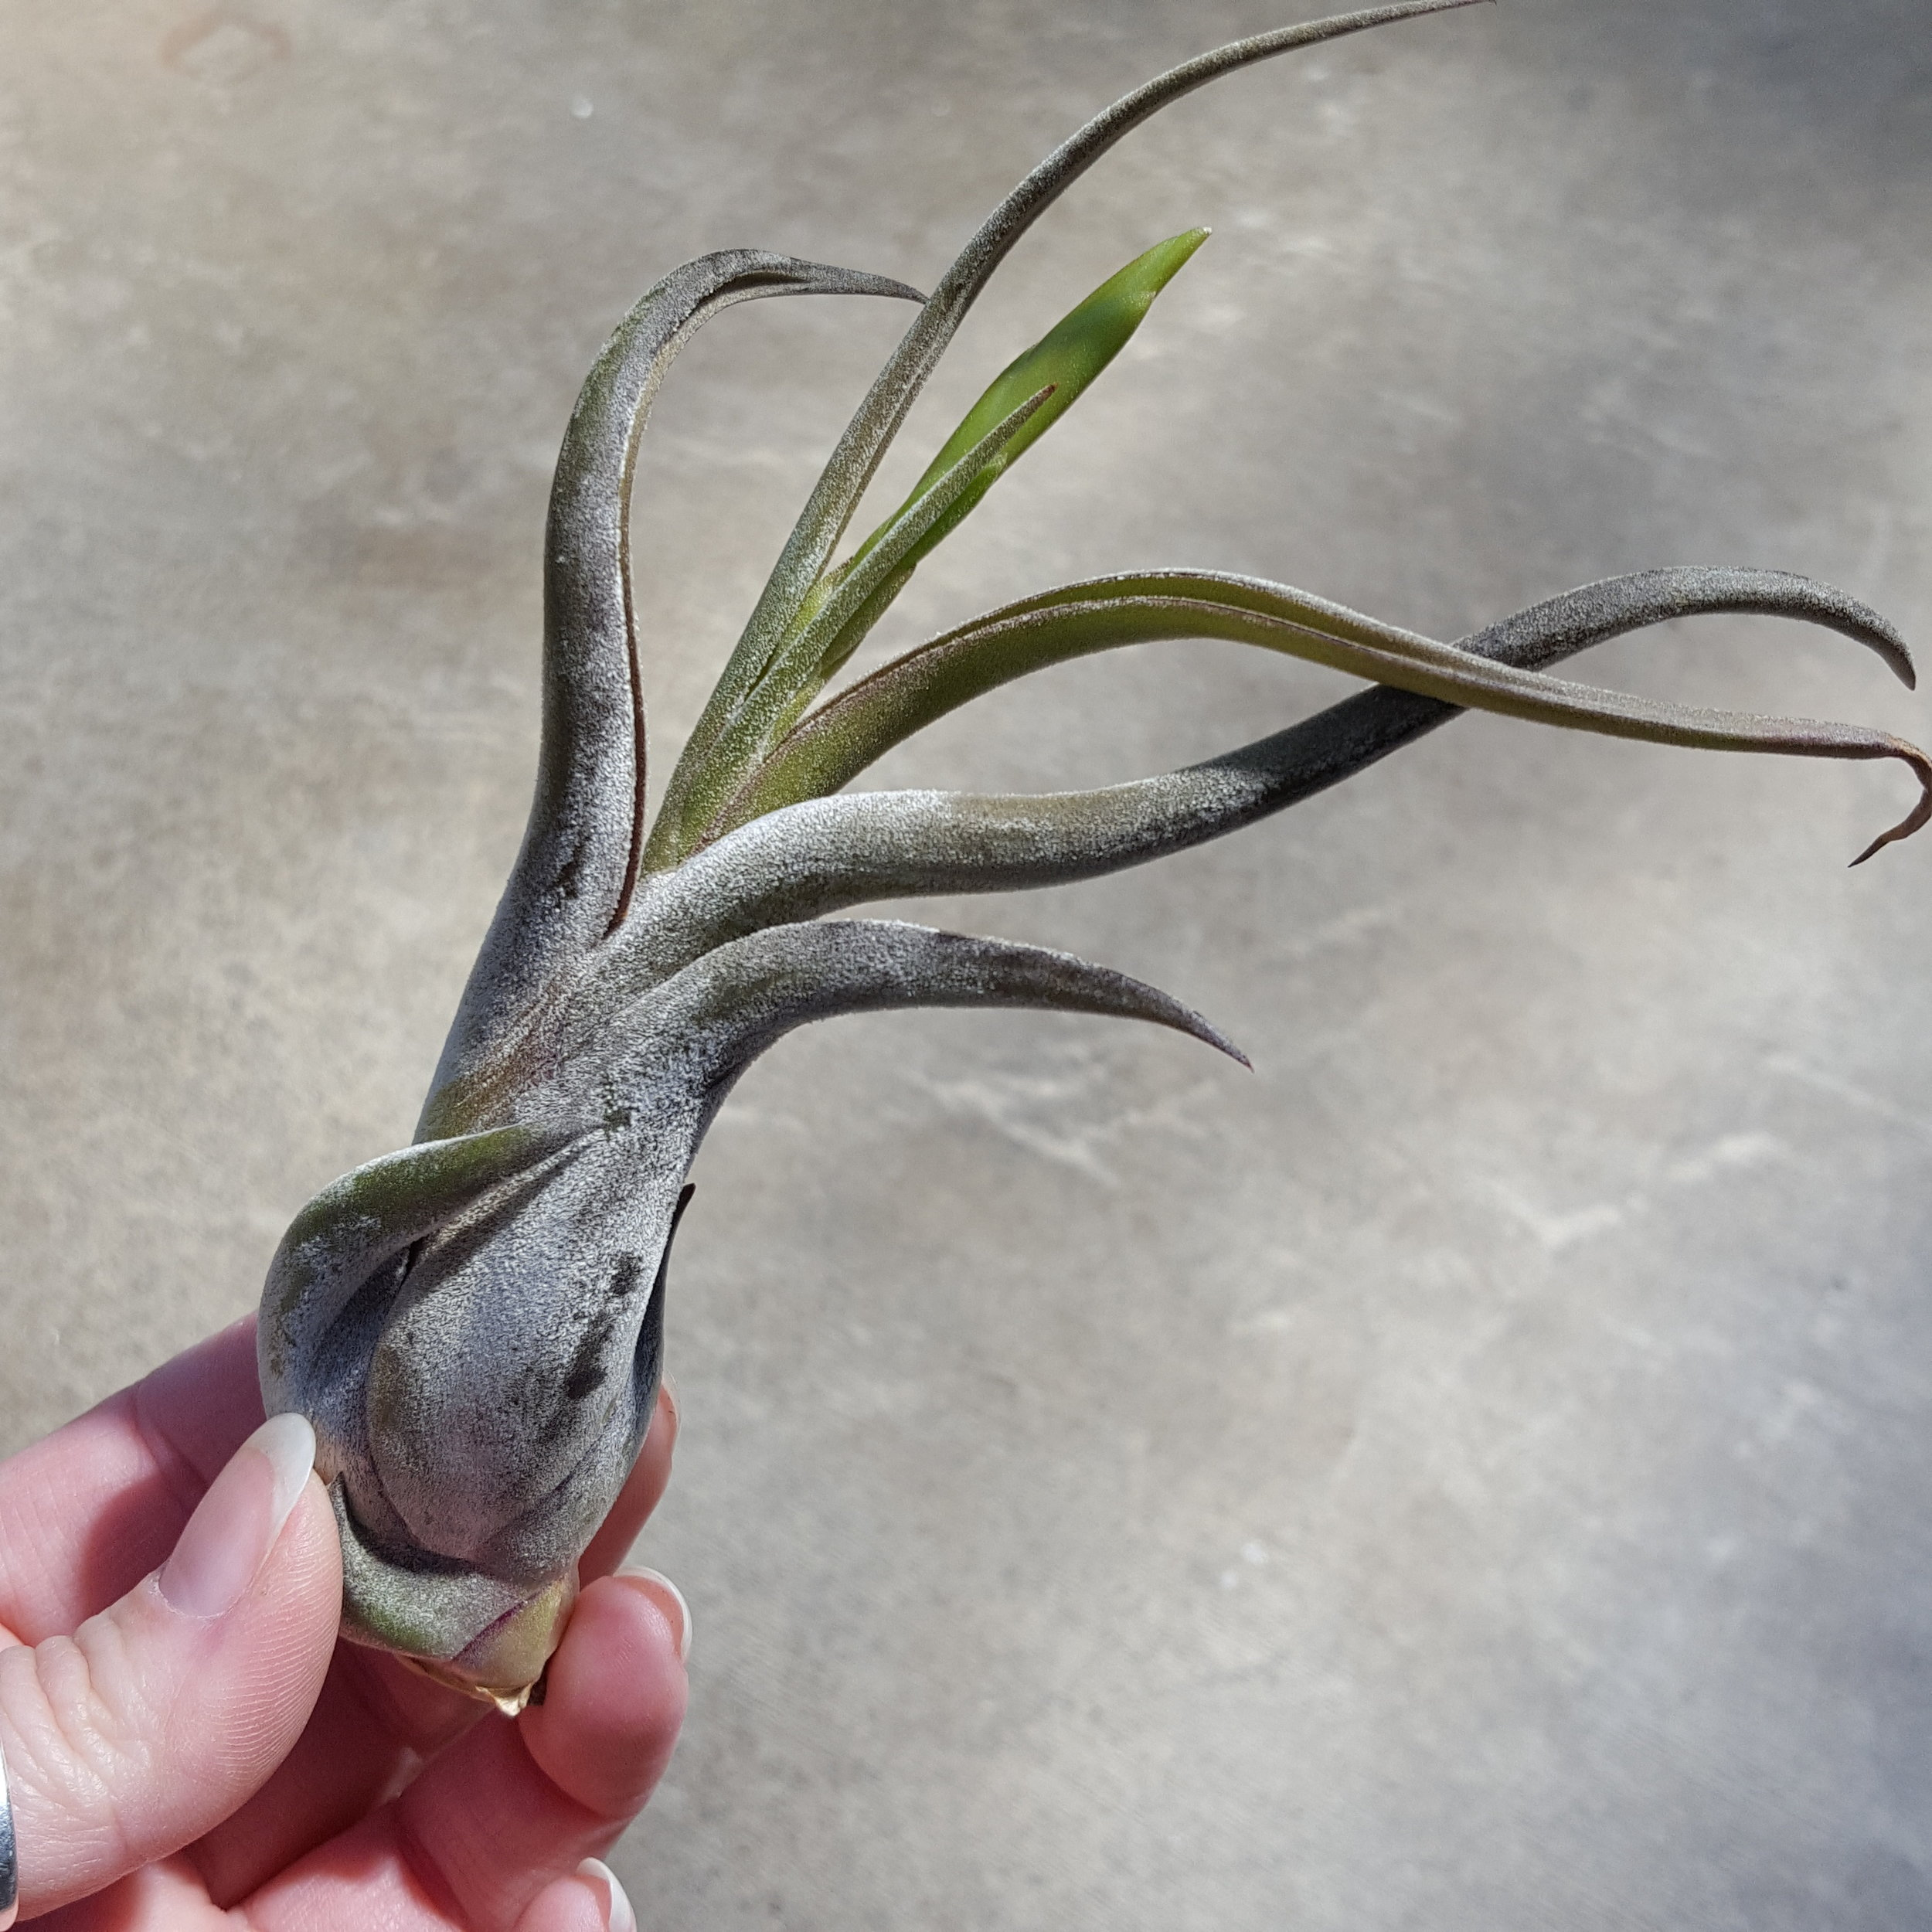 Tillandsia Pseudobaileyi- Native to Mexico, Guatemala, and El Salvador.